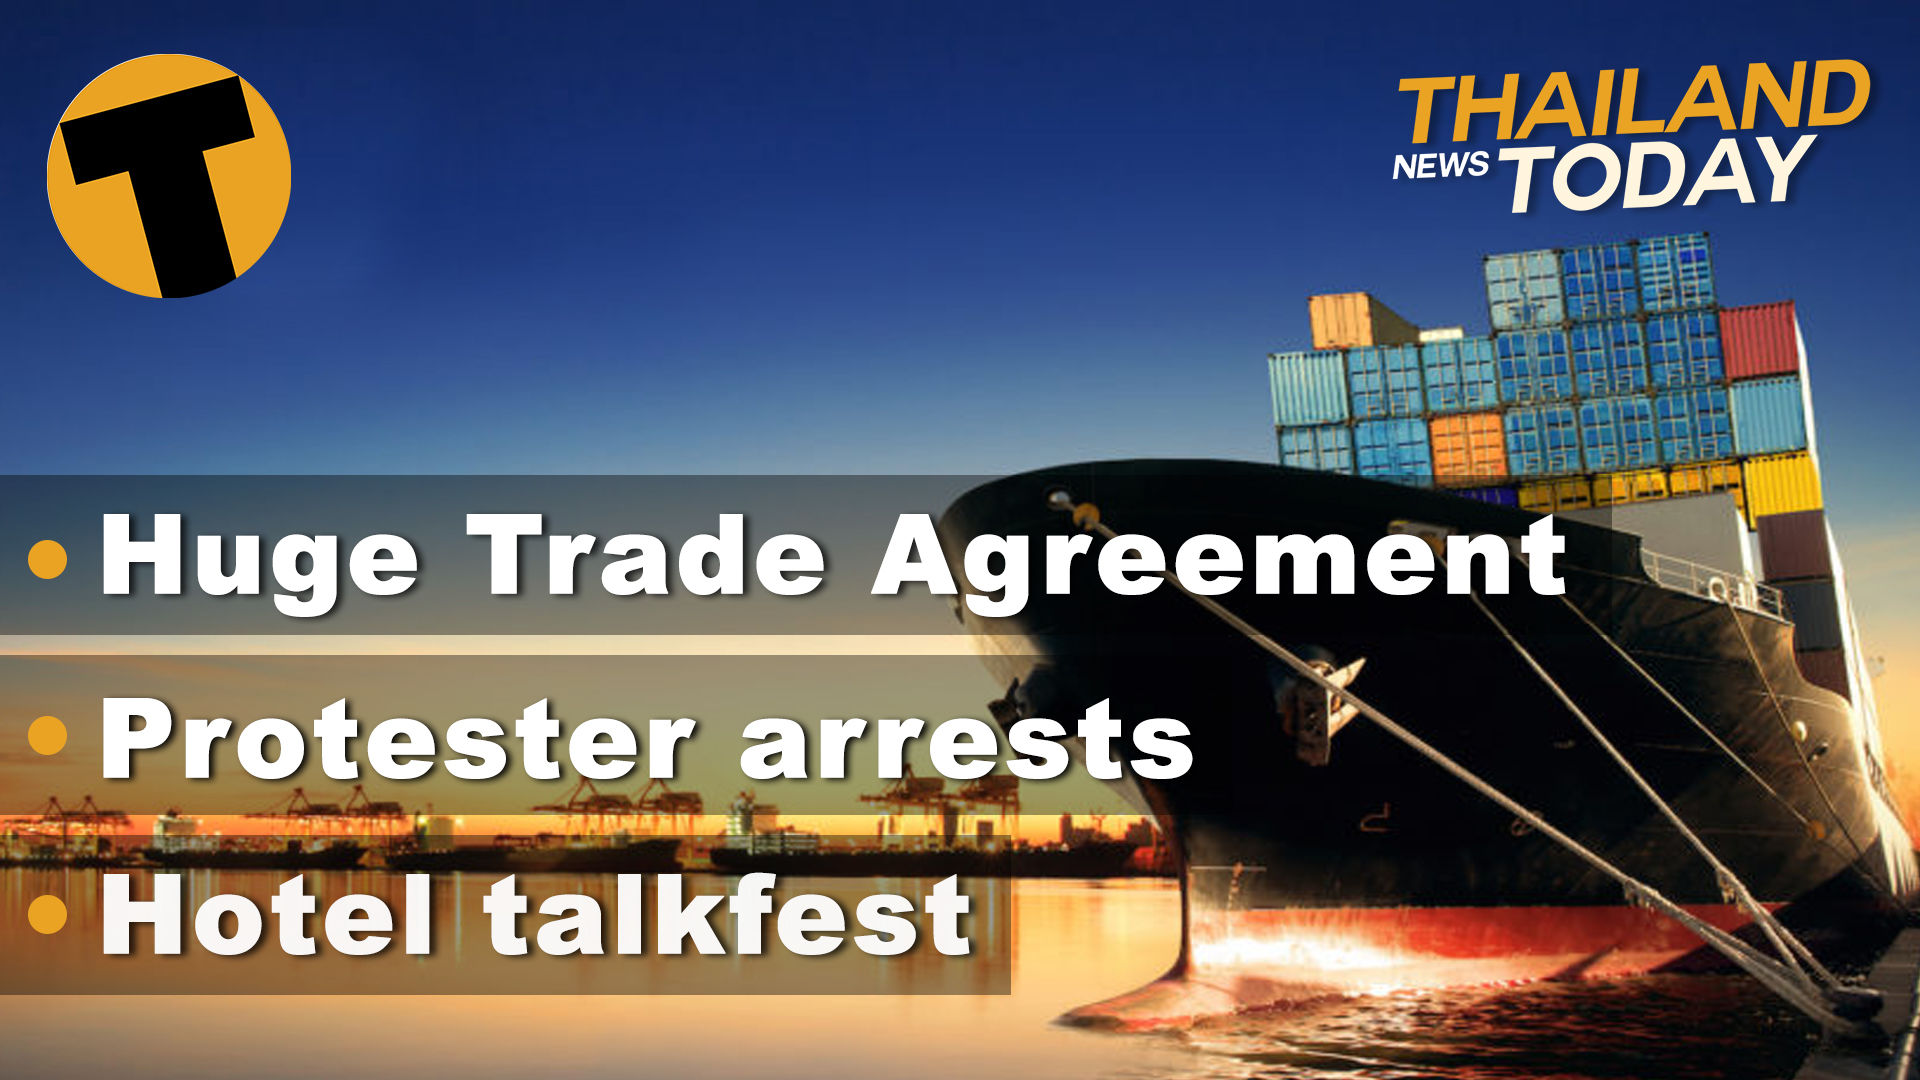 Thailand News Today   The RCEP reset, Hotel Talkfest, Protesters to be arrested   November 16   The Thaiger